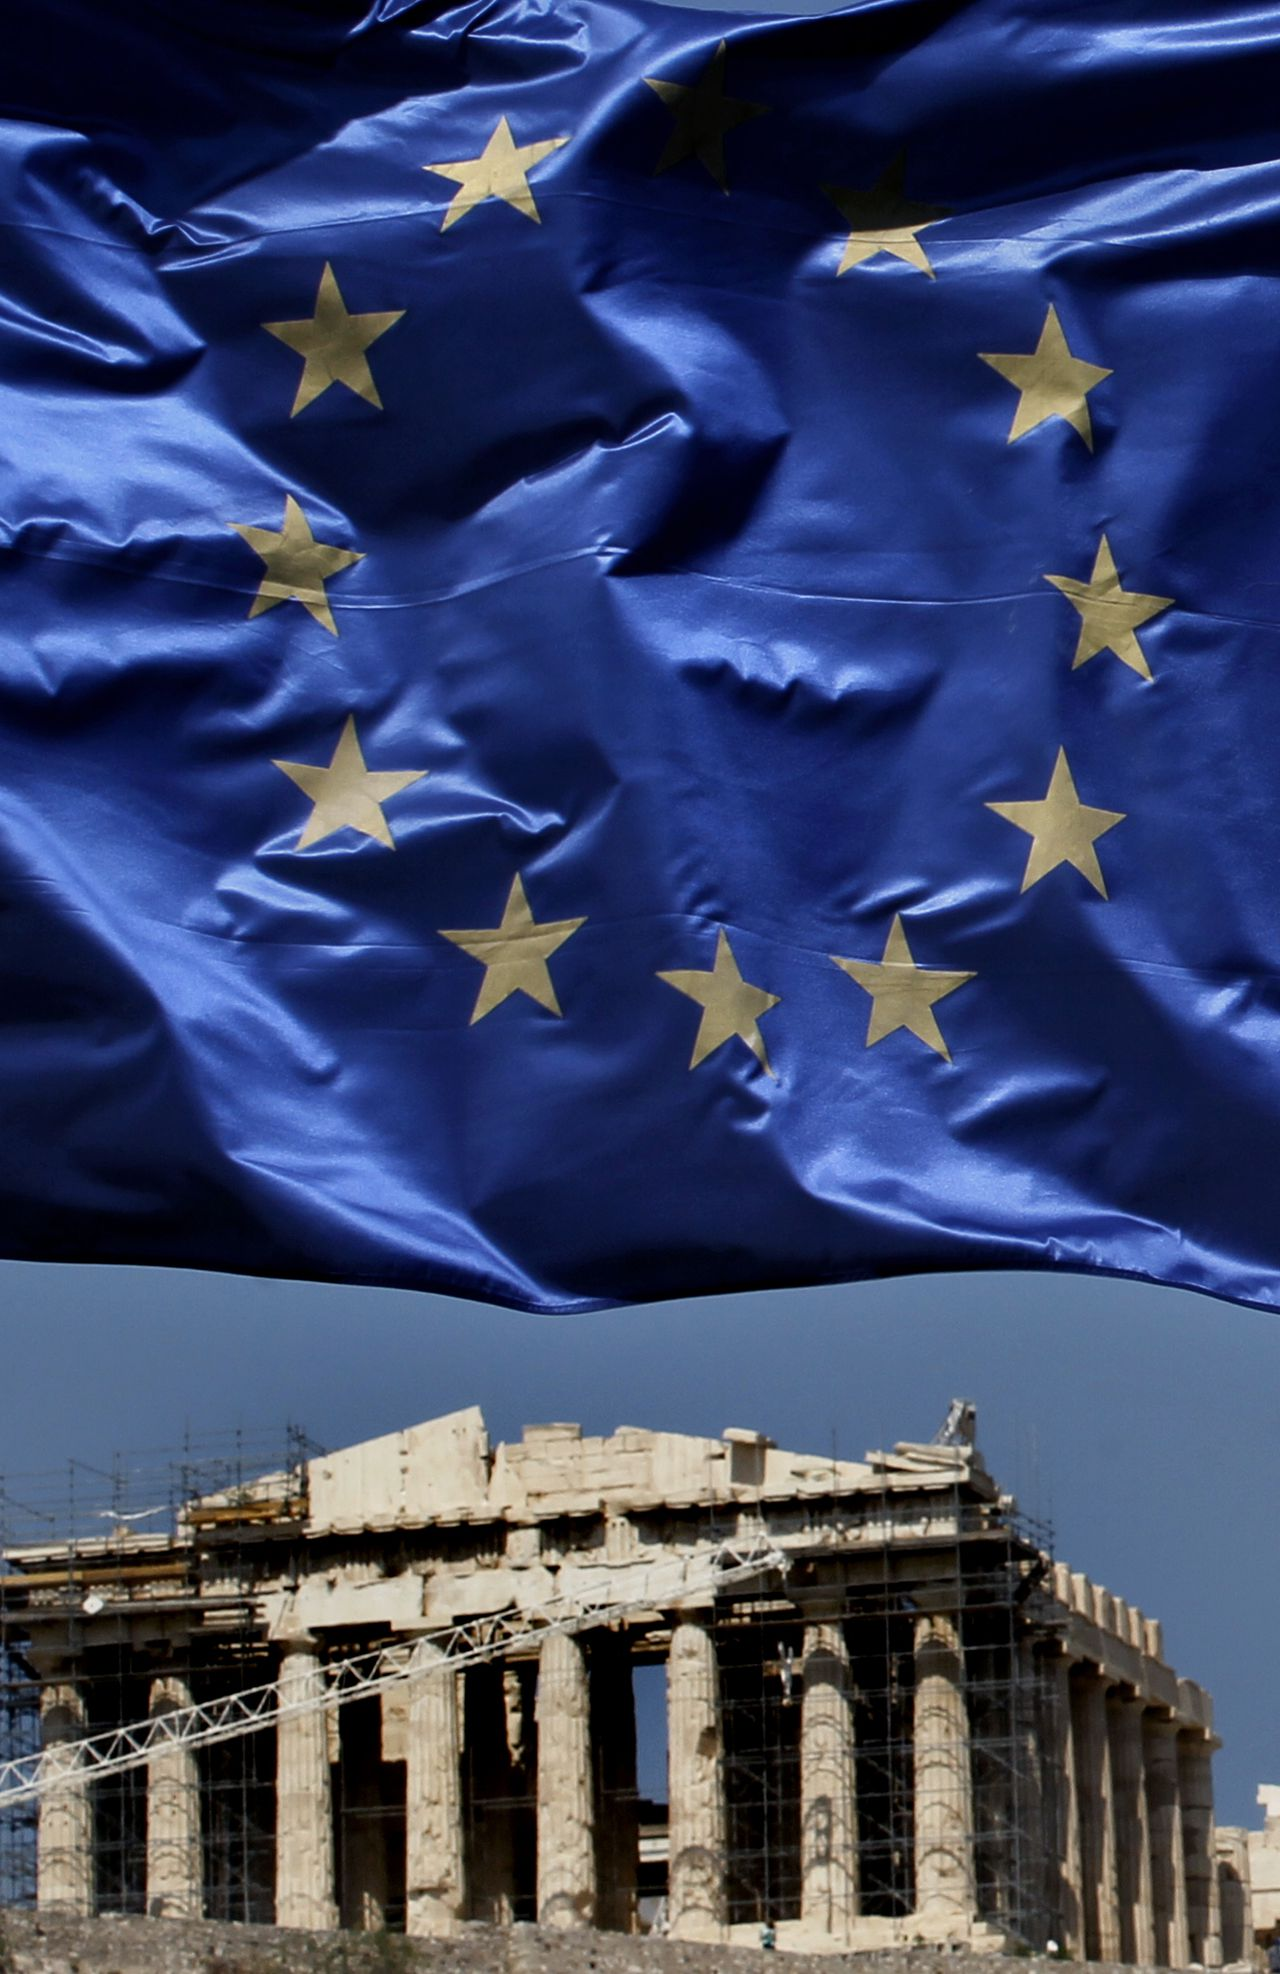 A European Union flag waves above the ancient Parthenon temple, at the Acropolis Hill, in Athens on Monday, July 11, 2011.Greece's Socialist government on Monday named a five-member committee to head a euro50 billion ($71.2 billion) privatization program aimed at easing the country's euro340 billion ($484.2 billion) national debt. (AP Photo/Petros Giannakouris)